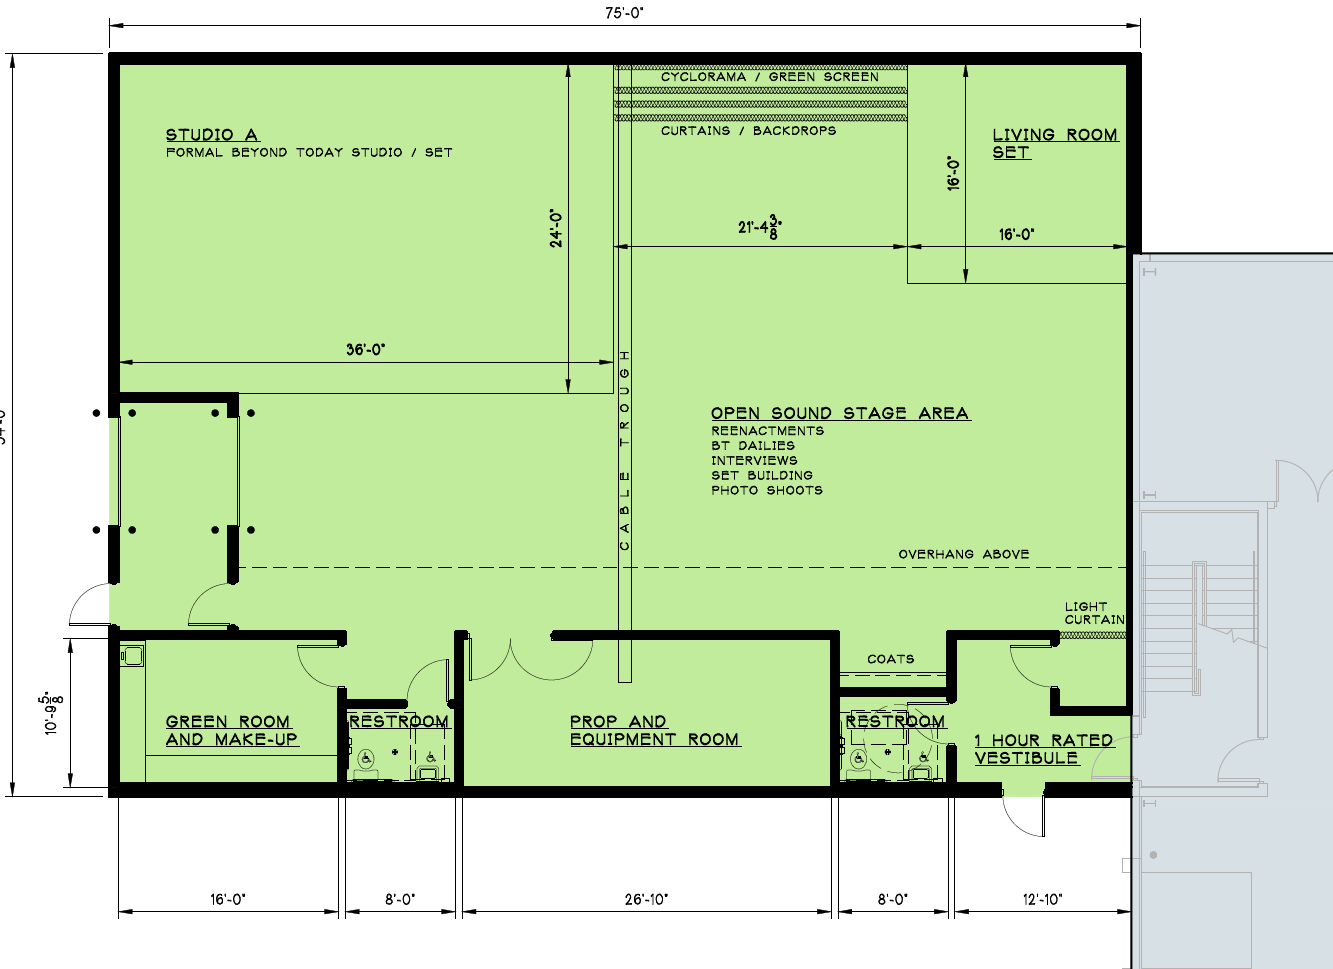 Video recording studio plans being drafted united church of god studio first floorg ccuart Images